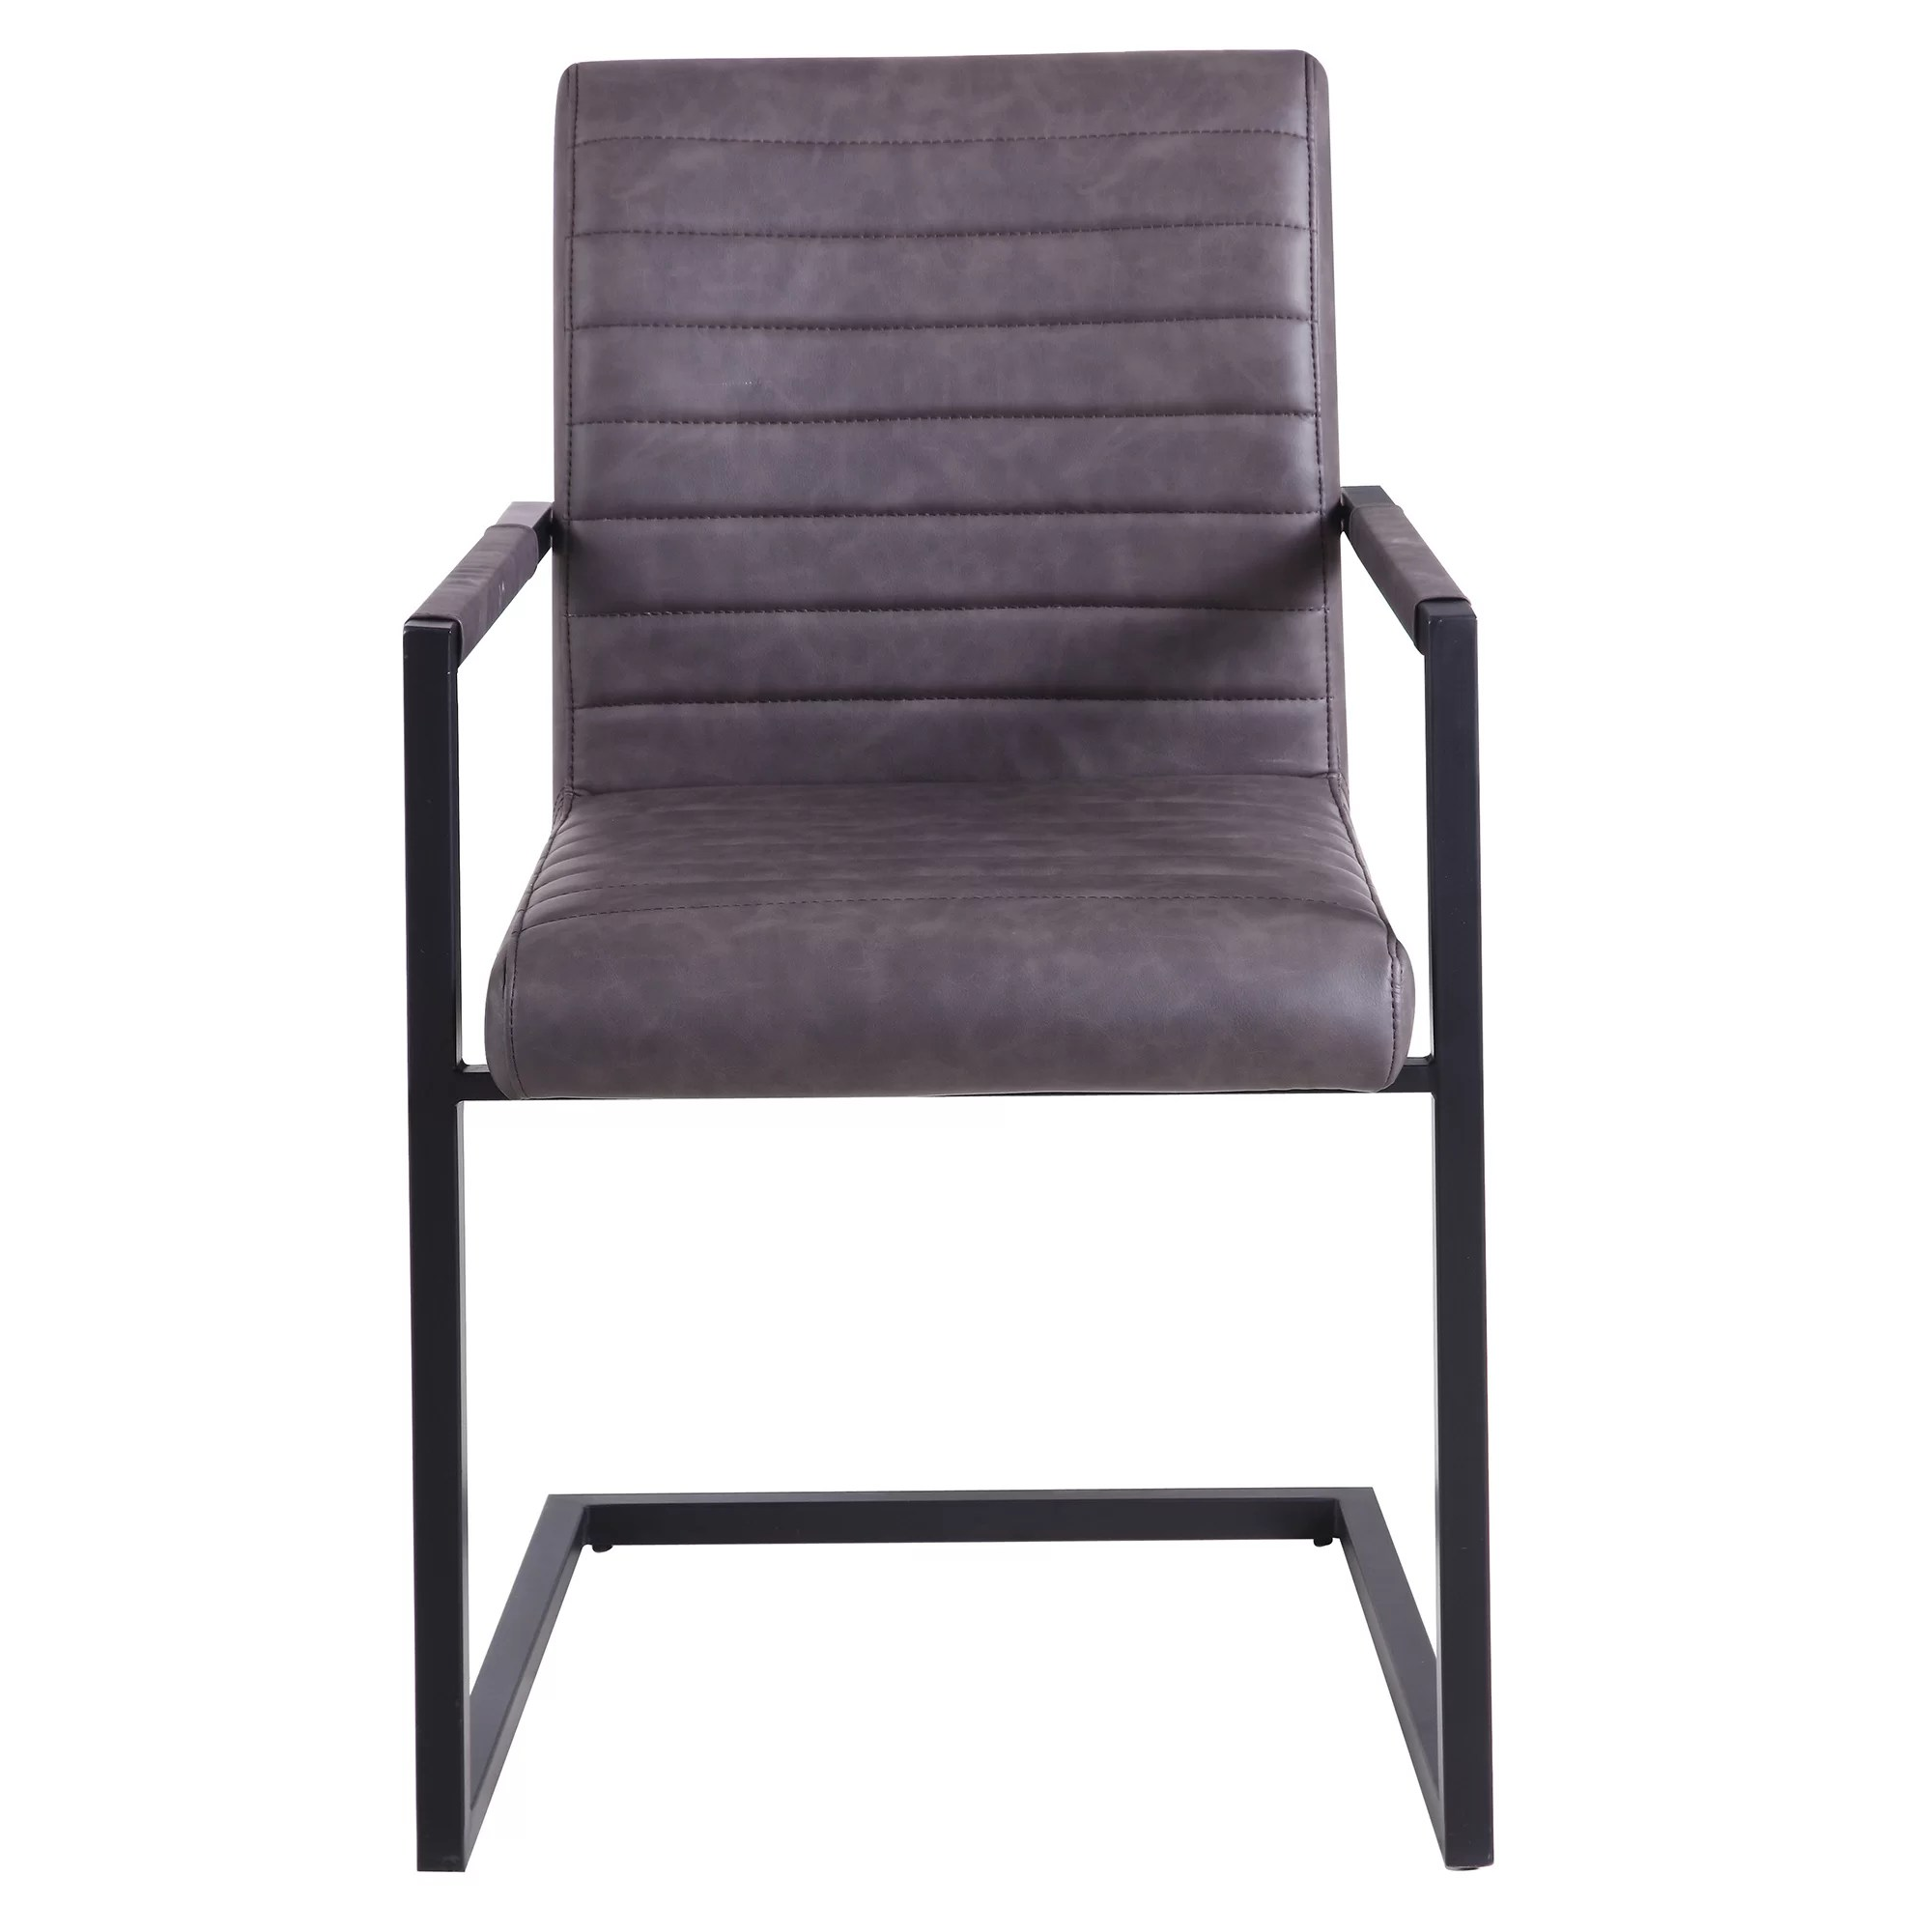 accent chairs under 100 2 with storage ottoman nspire faux leather arm chair and reviews wayfair